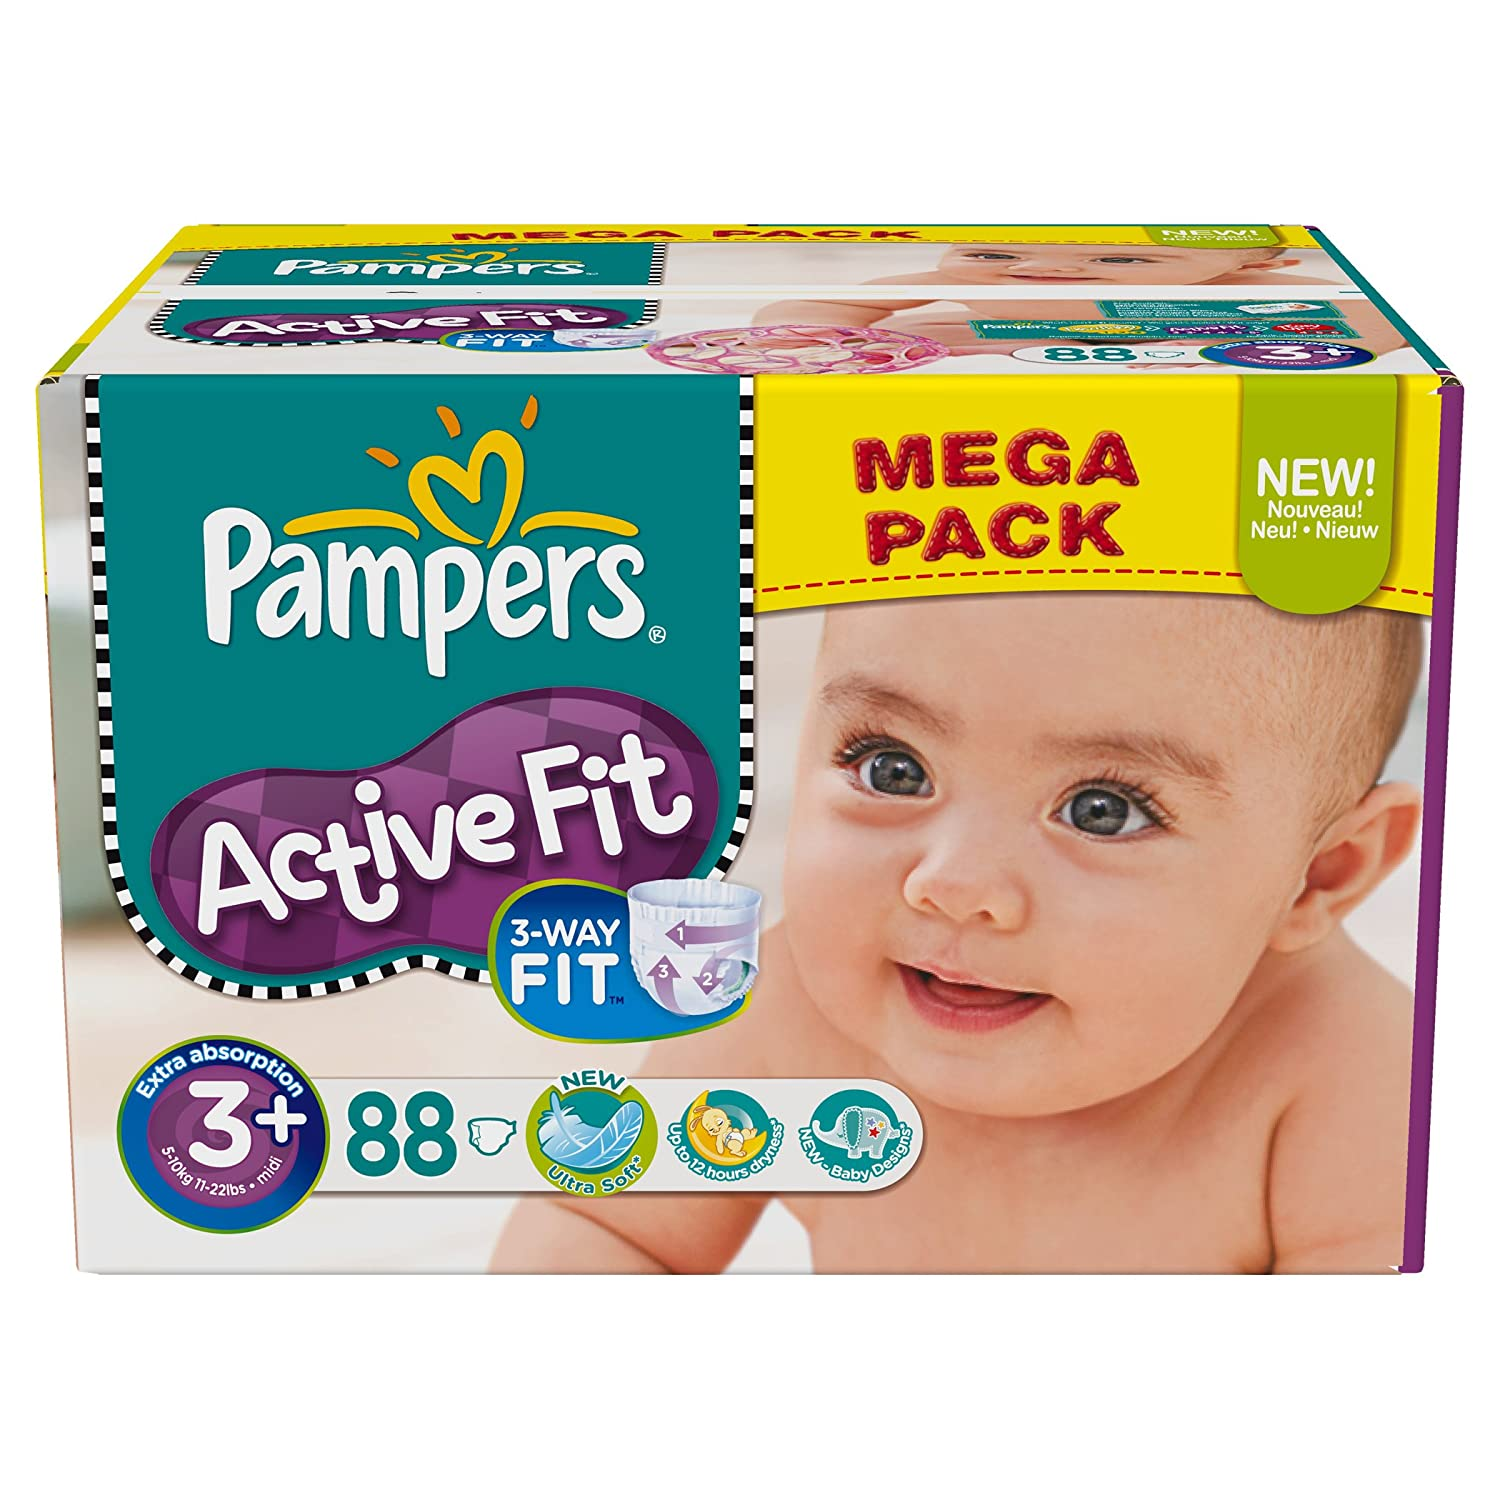 Pampers taille - Achat couches pampers en gros pas cher ...